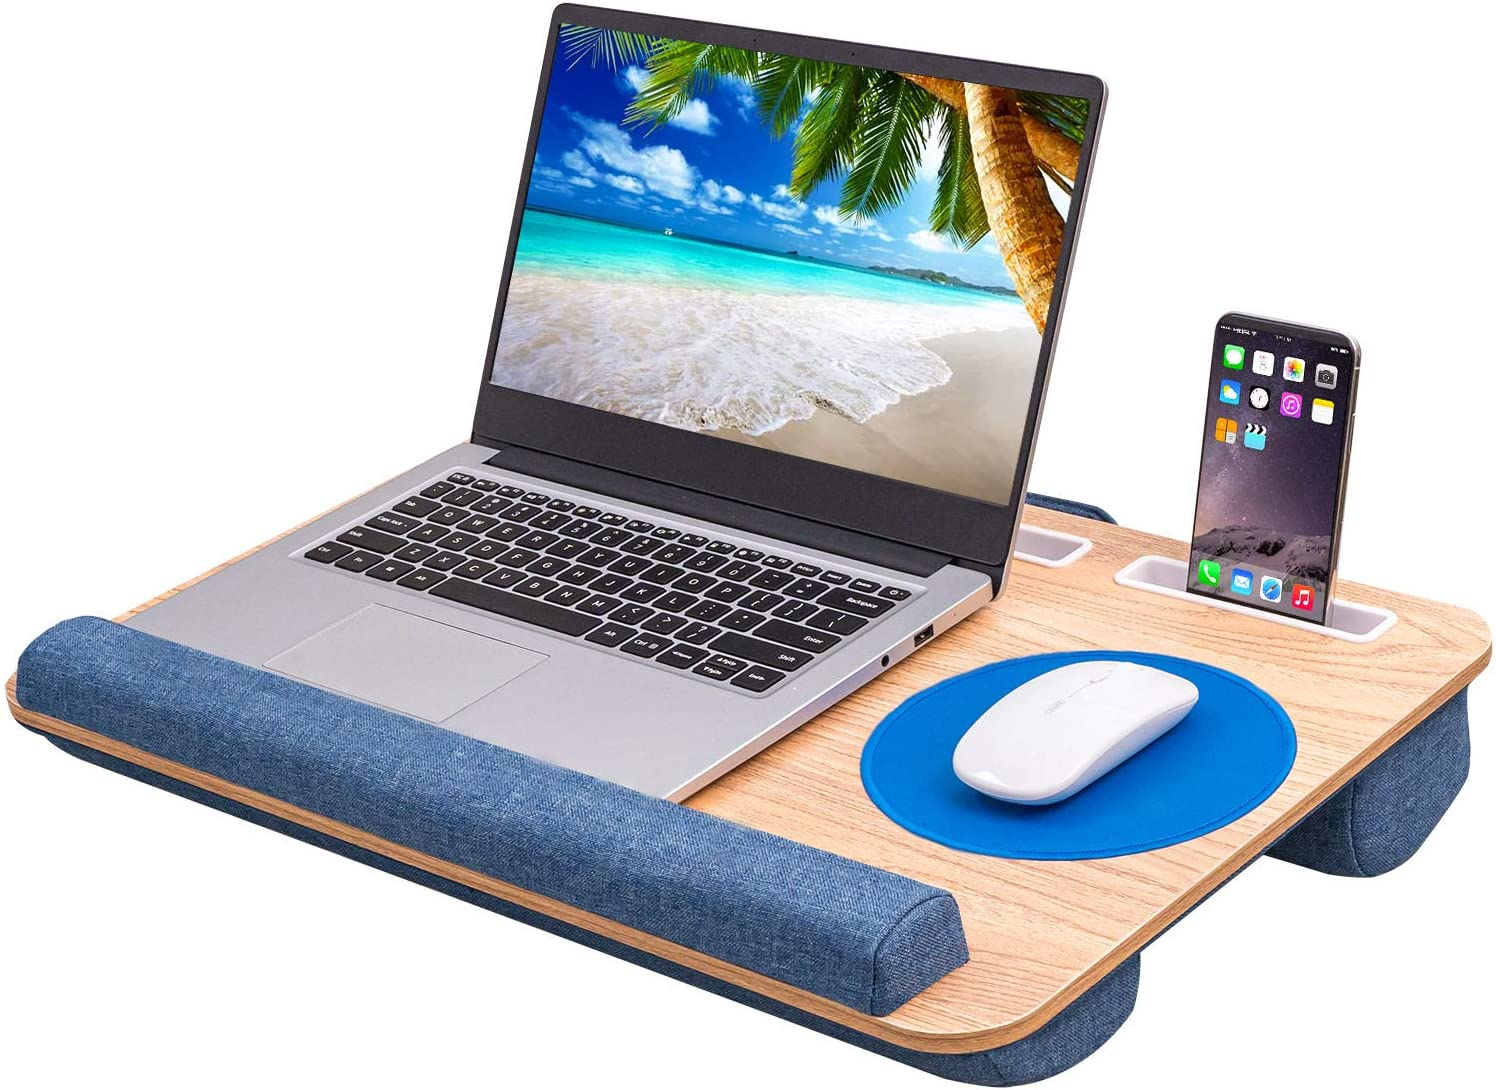 DERIMIZZ Home Office Lap Desk with Cushion-Portable Laptop Desk Tray Fits up to 17 inch Laptops, Built-in Mouse Pad and Wrist Rest for MacBook and Notebook, Laptop Pad with Slots for Phone and Tablet